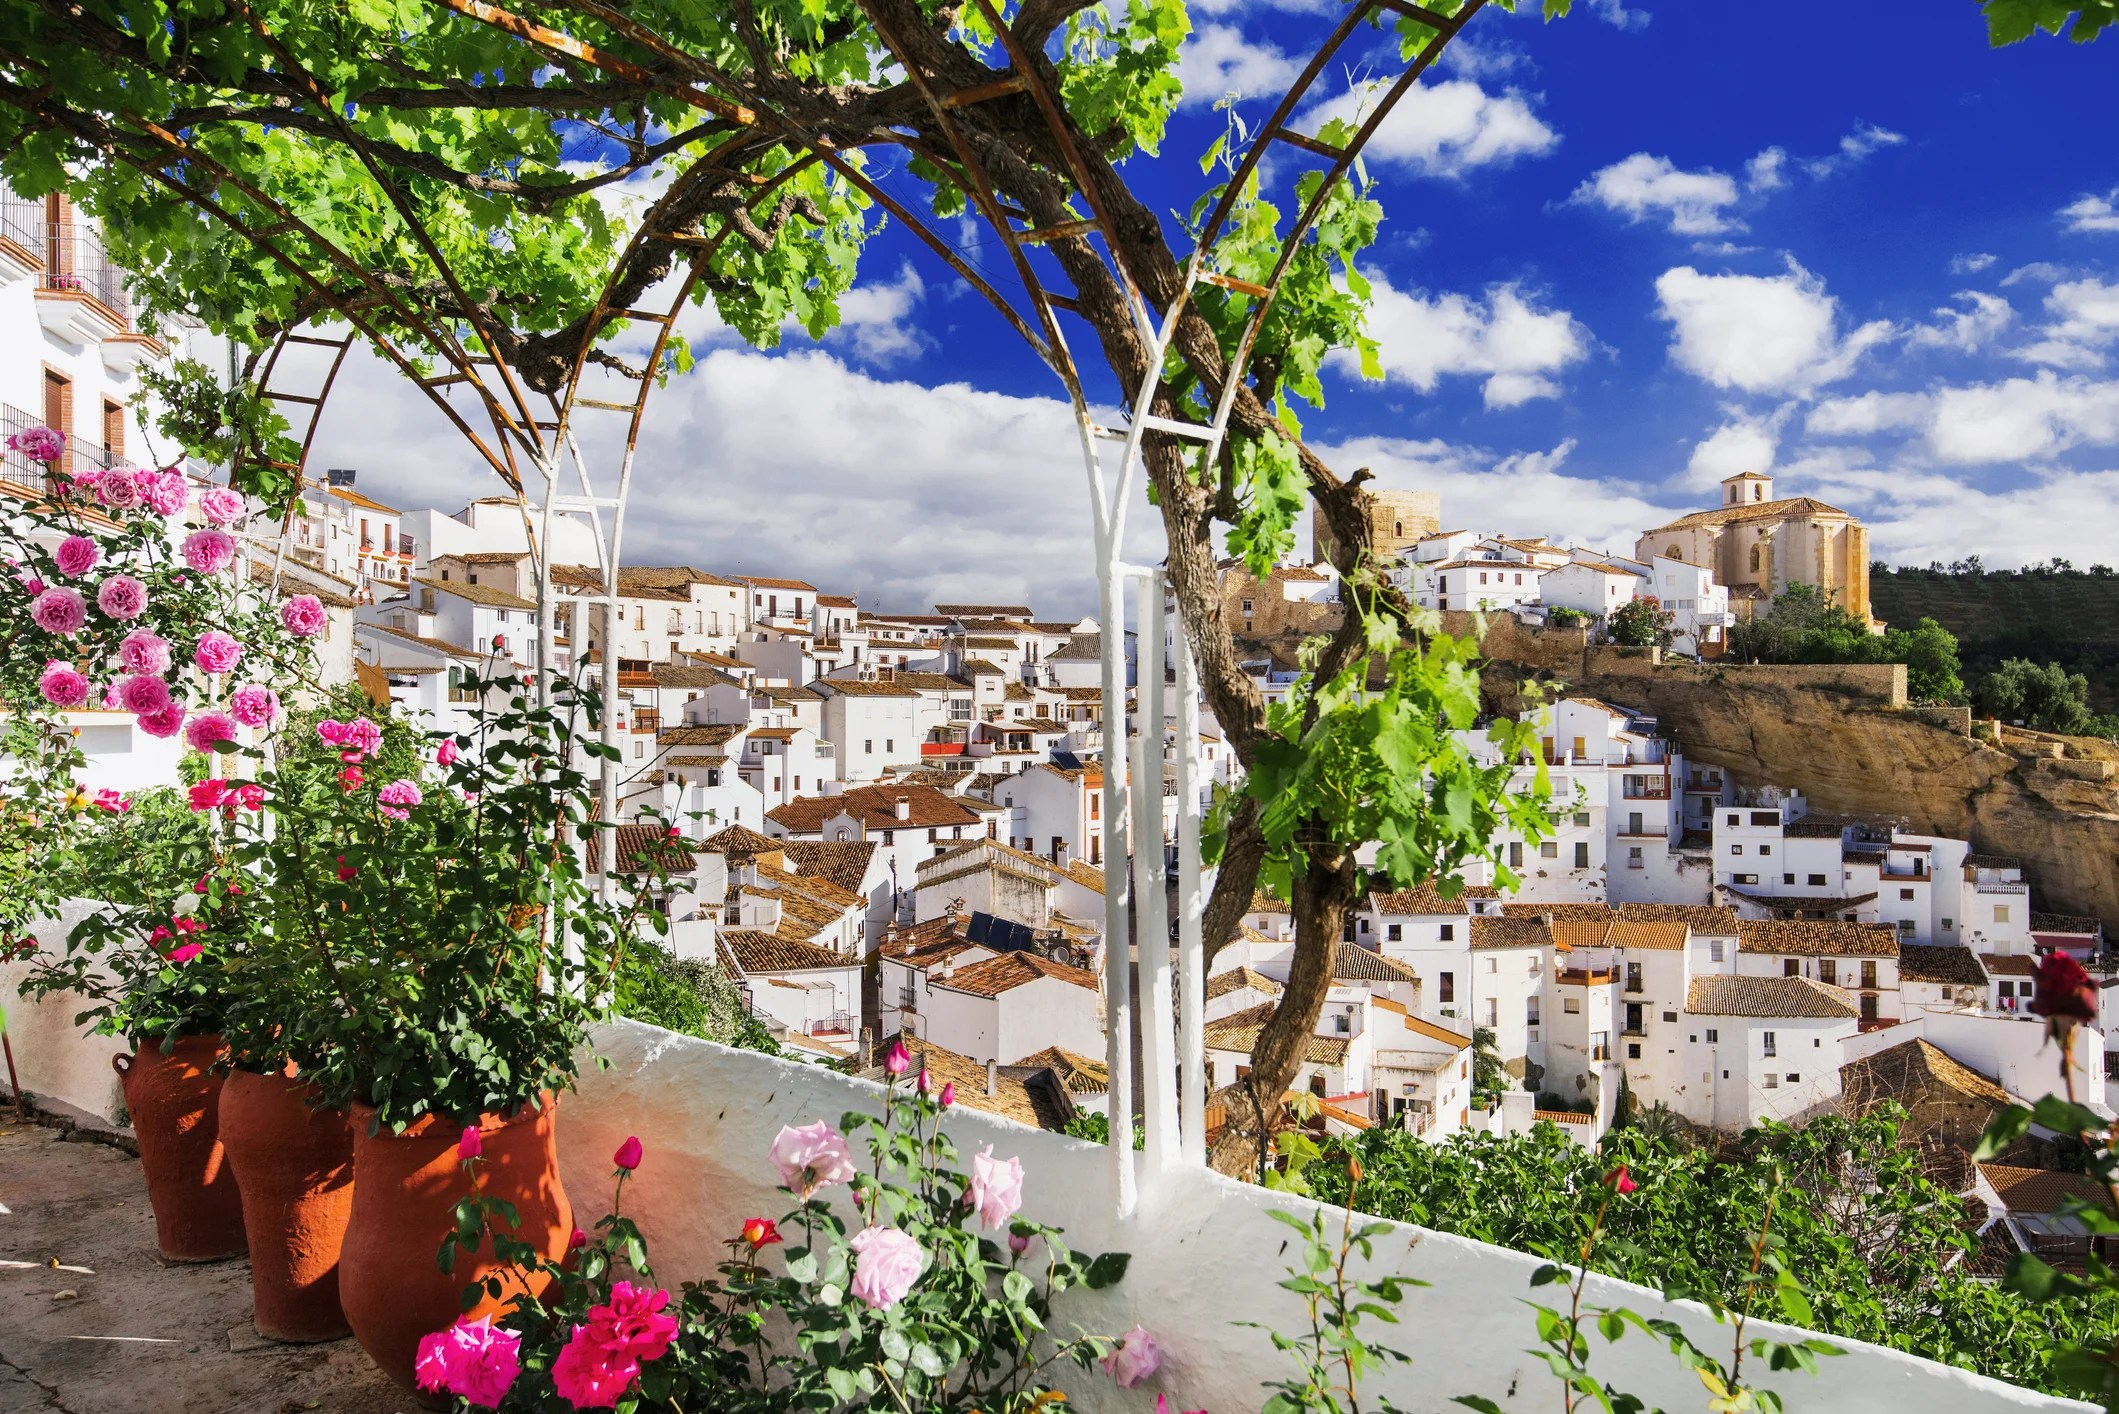 15 of the most beautiful villages in Spain